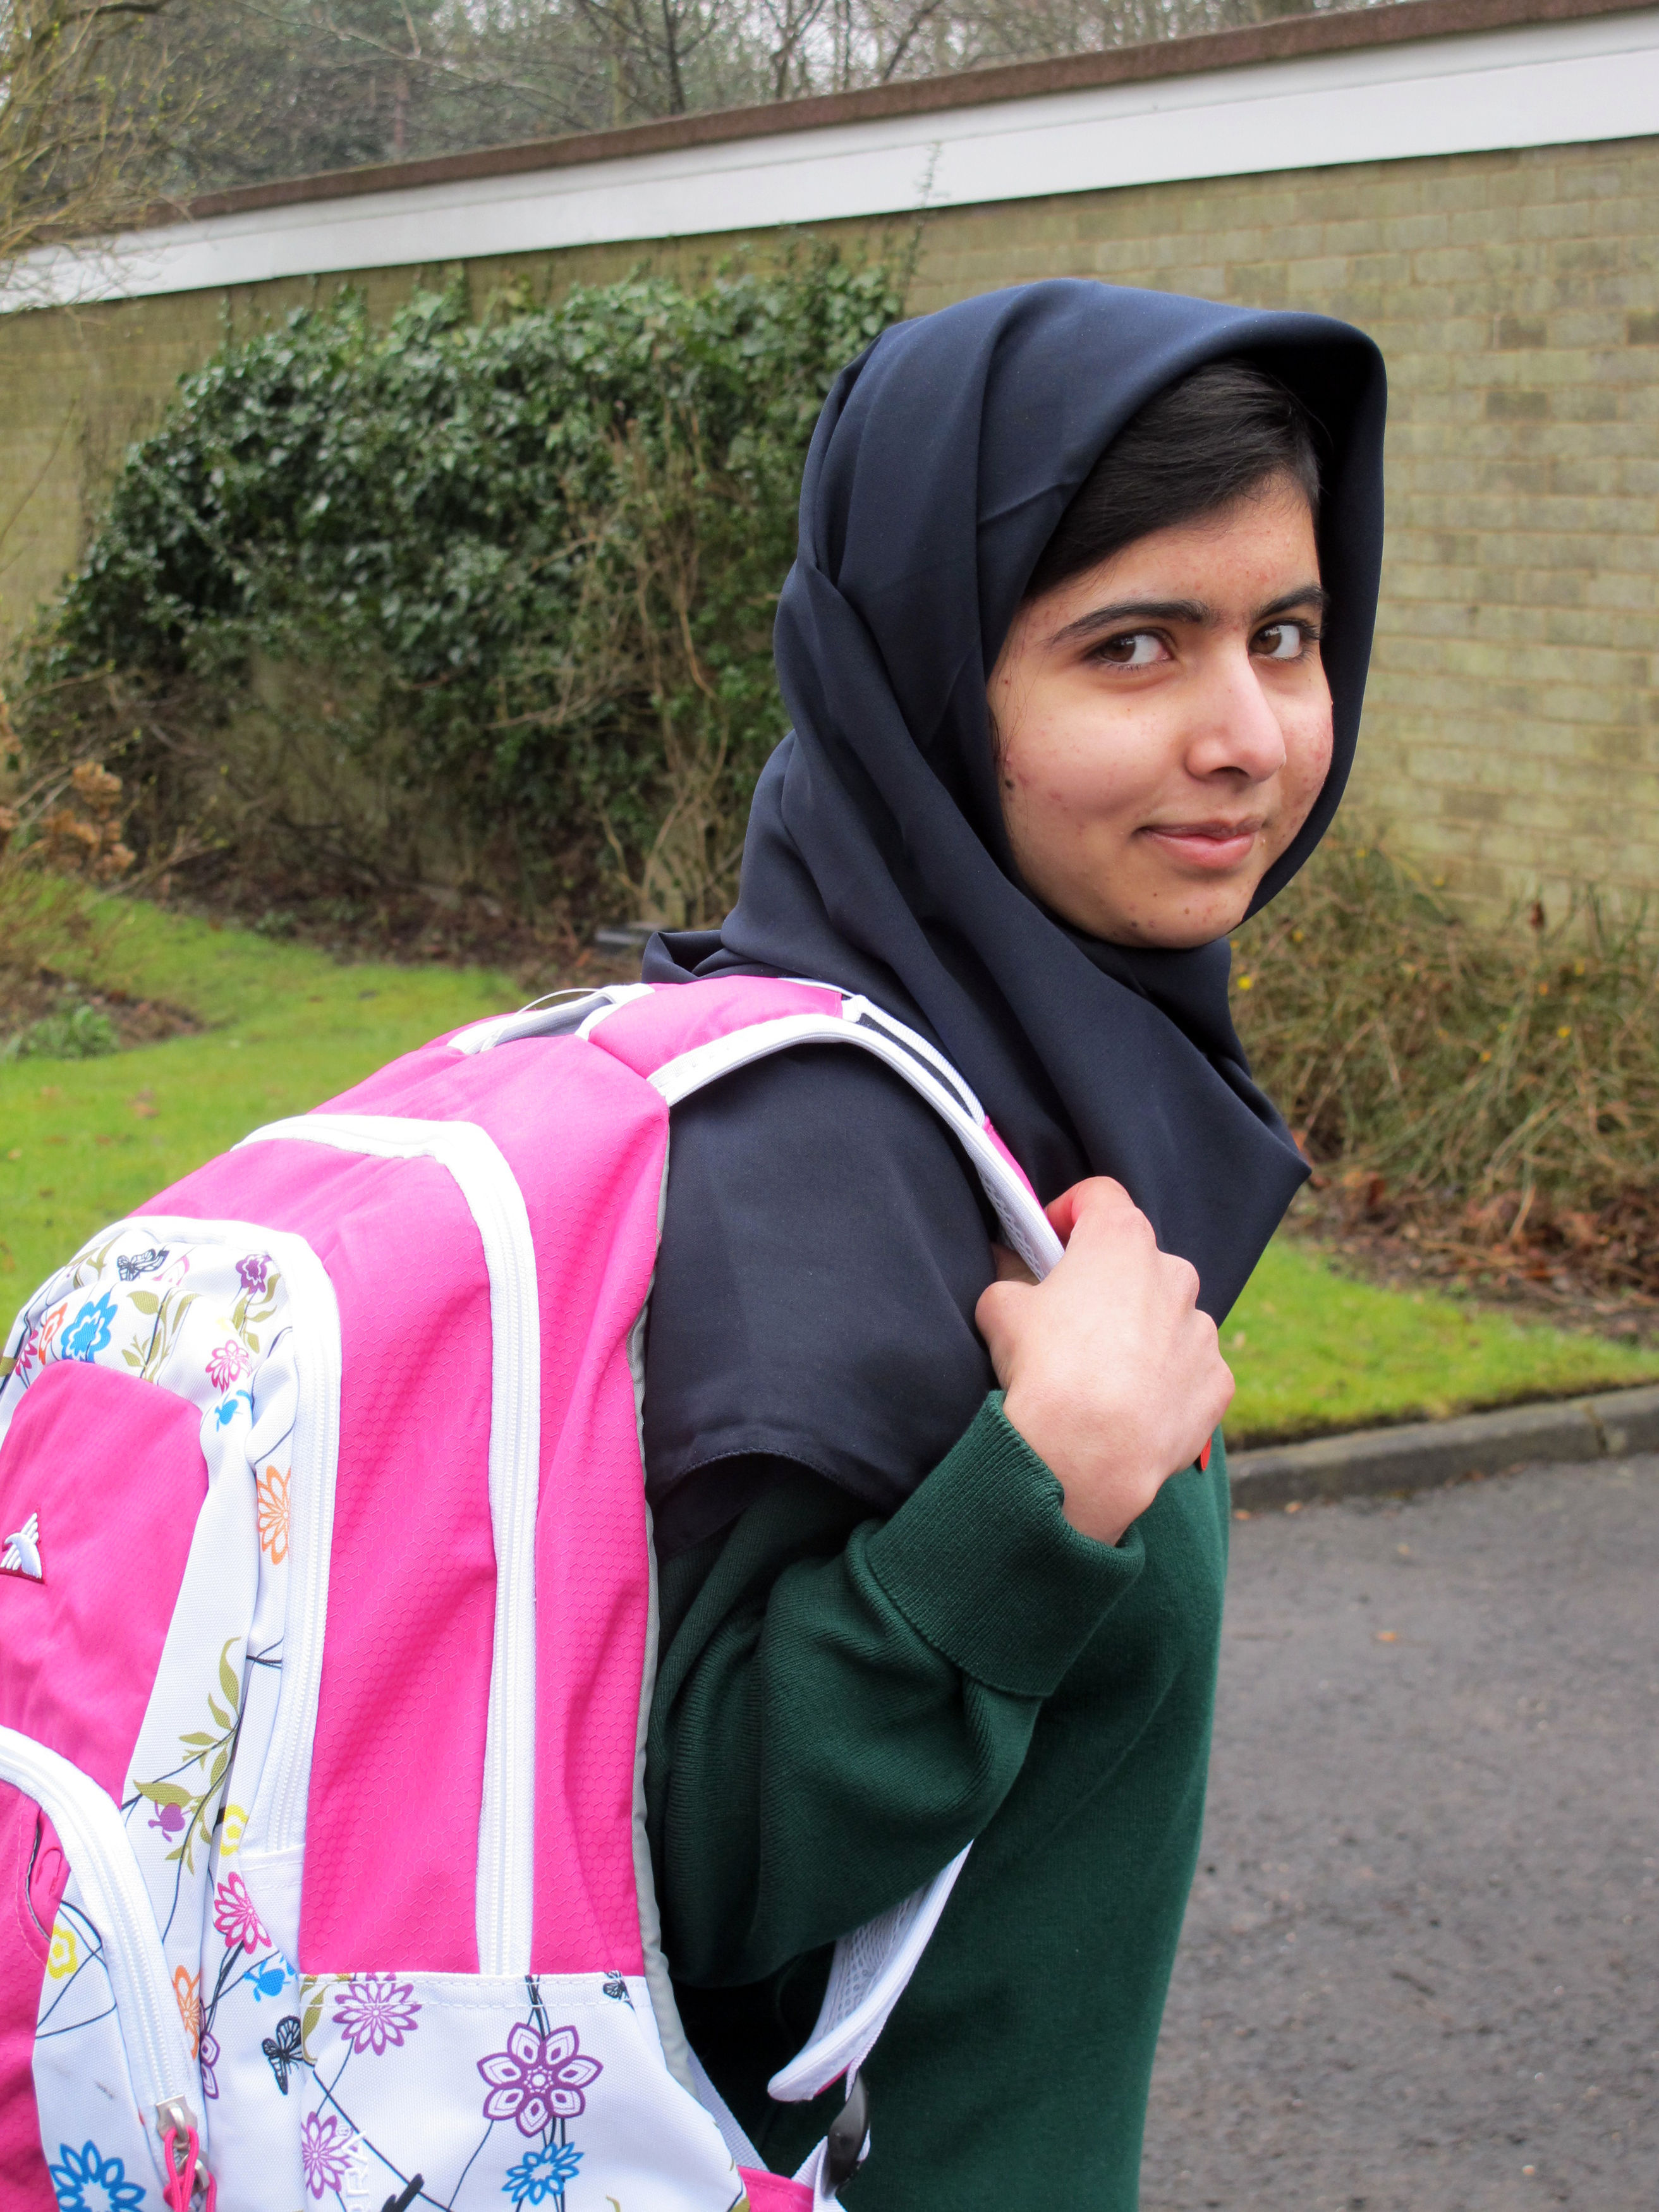 Image made available by her press office of Malala Yousafzai, the Pakistani schoolgirl shot in the head by the Taliban, as she attends her first day of school on Tuesday March 19, 2013 just weeks after being released from hospital. The 15-year-old participated in lessons at the Edgbaston High School for Girls in Birmingham, central England. She survived an assassination attempt by the fundamentalist political group in October last year and underwent hours of surgery in the UK to try and repair the damage caused by a bullet which grazed her brain. (AP Photo/ Malala Press Office)